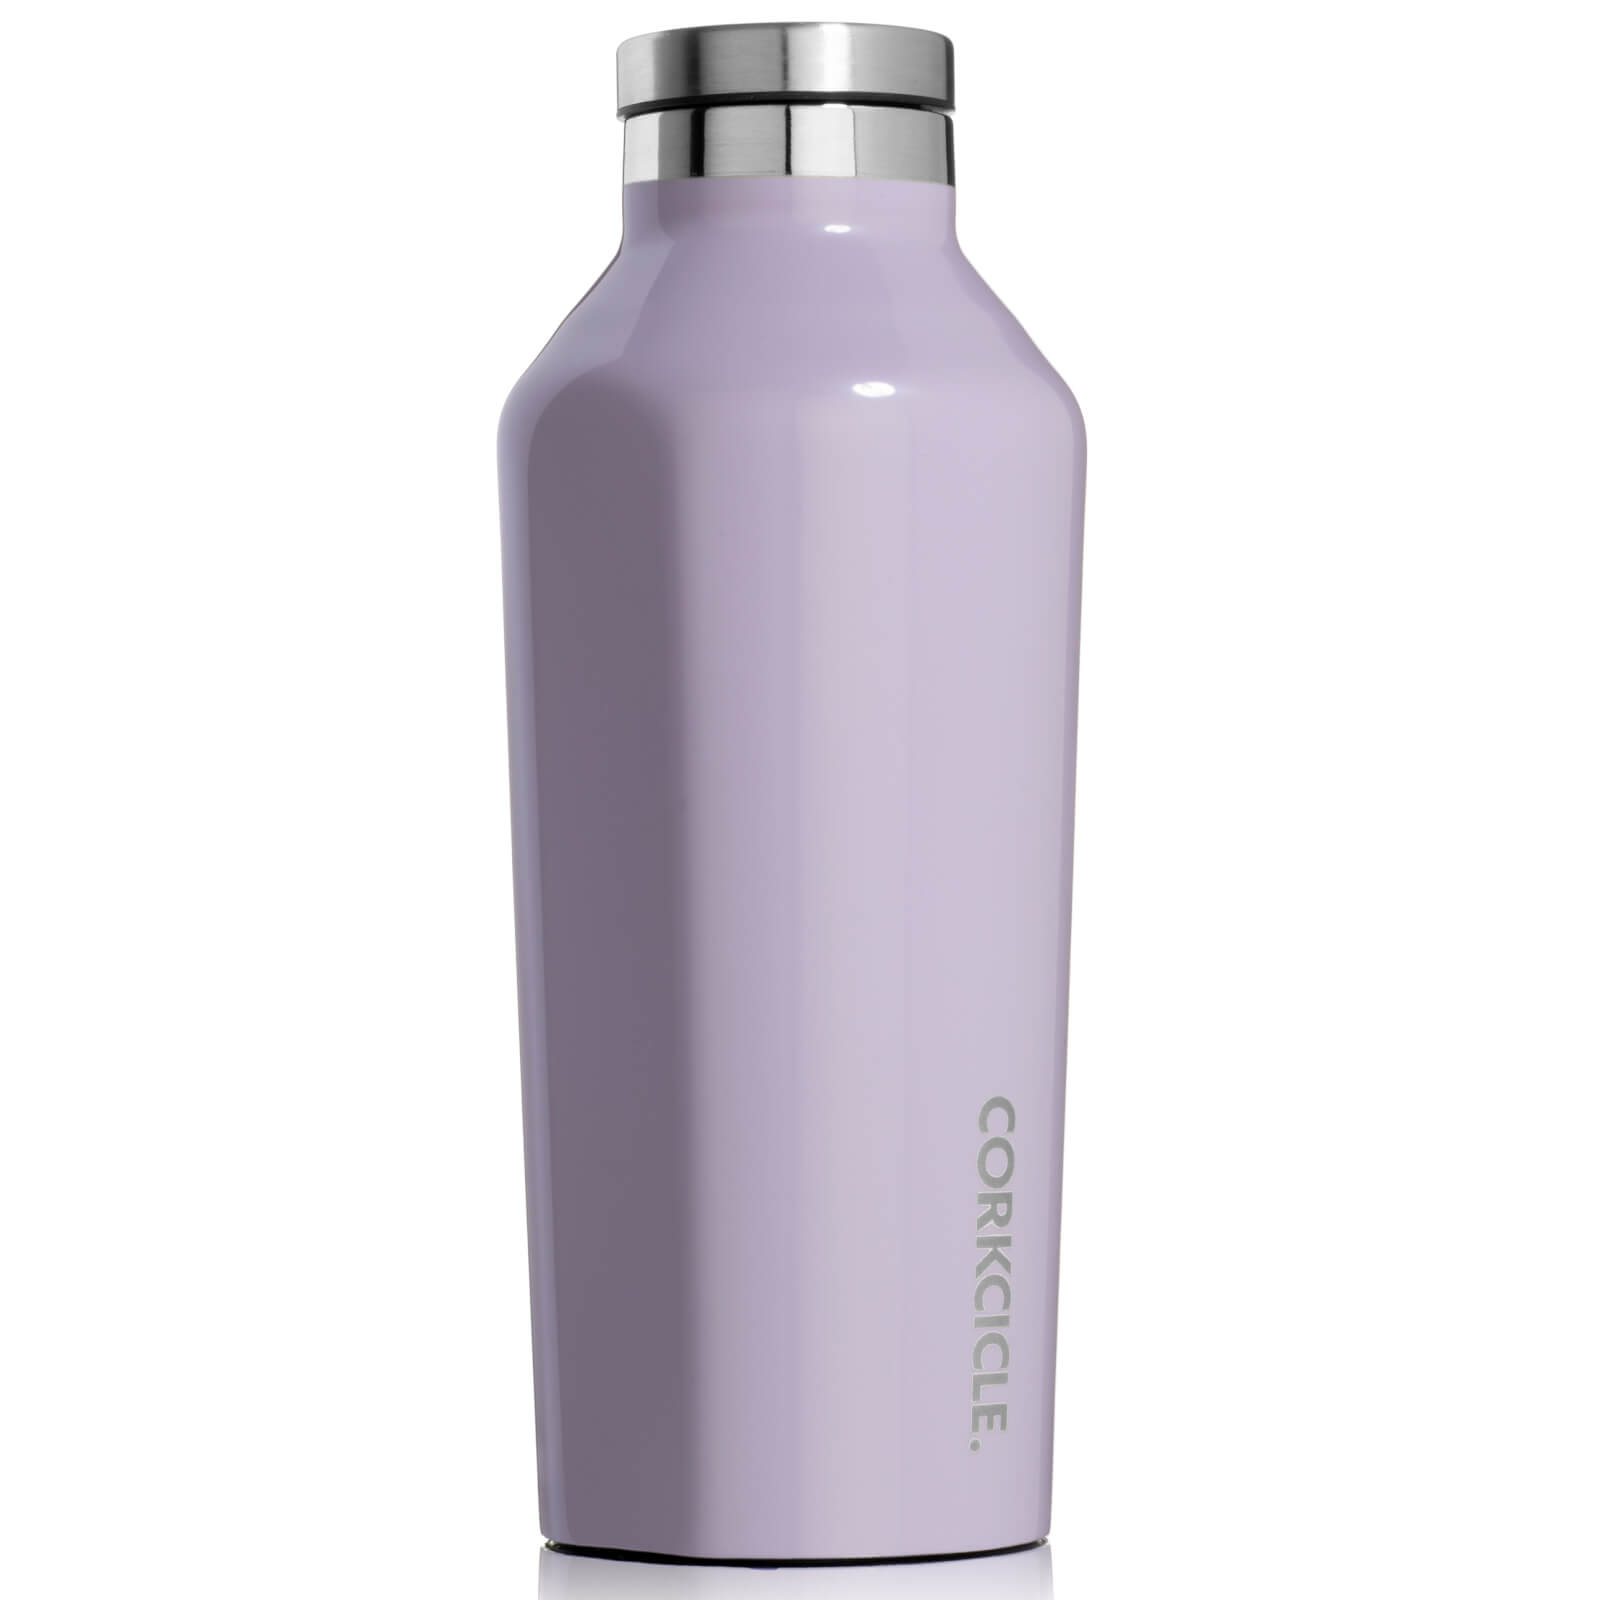 Corkcicle Canteen Triple Insulated Flask 9oz - Lilac